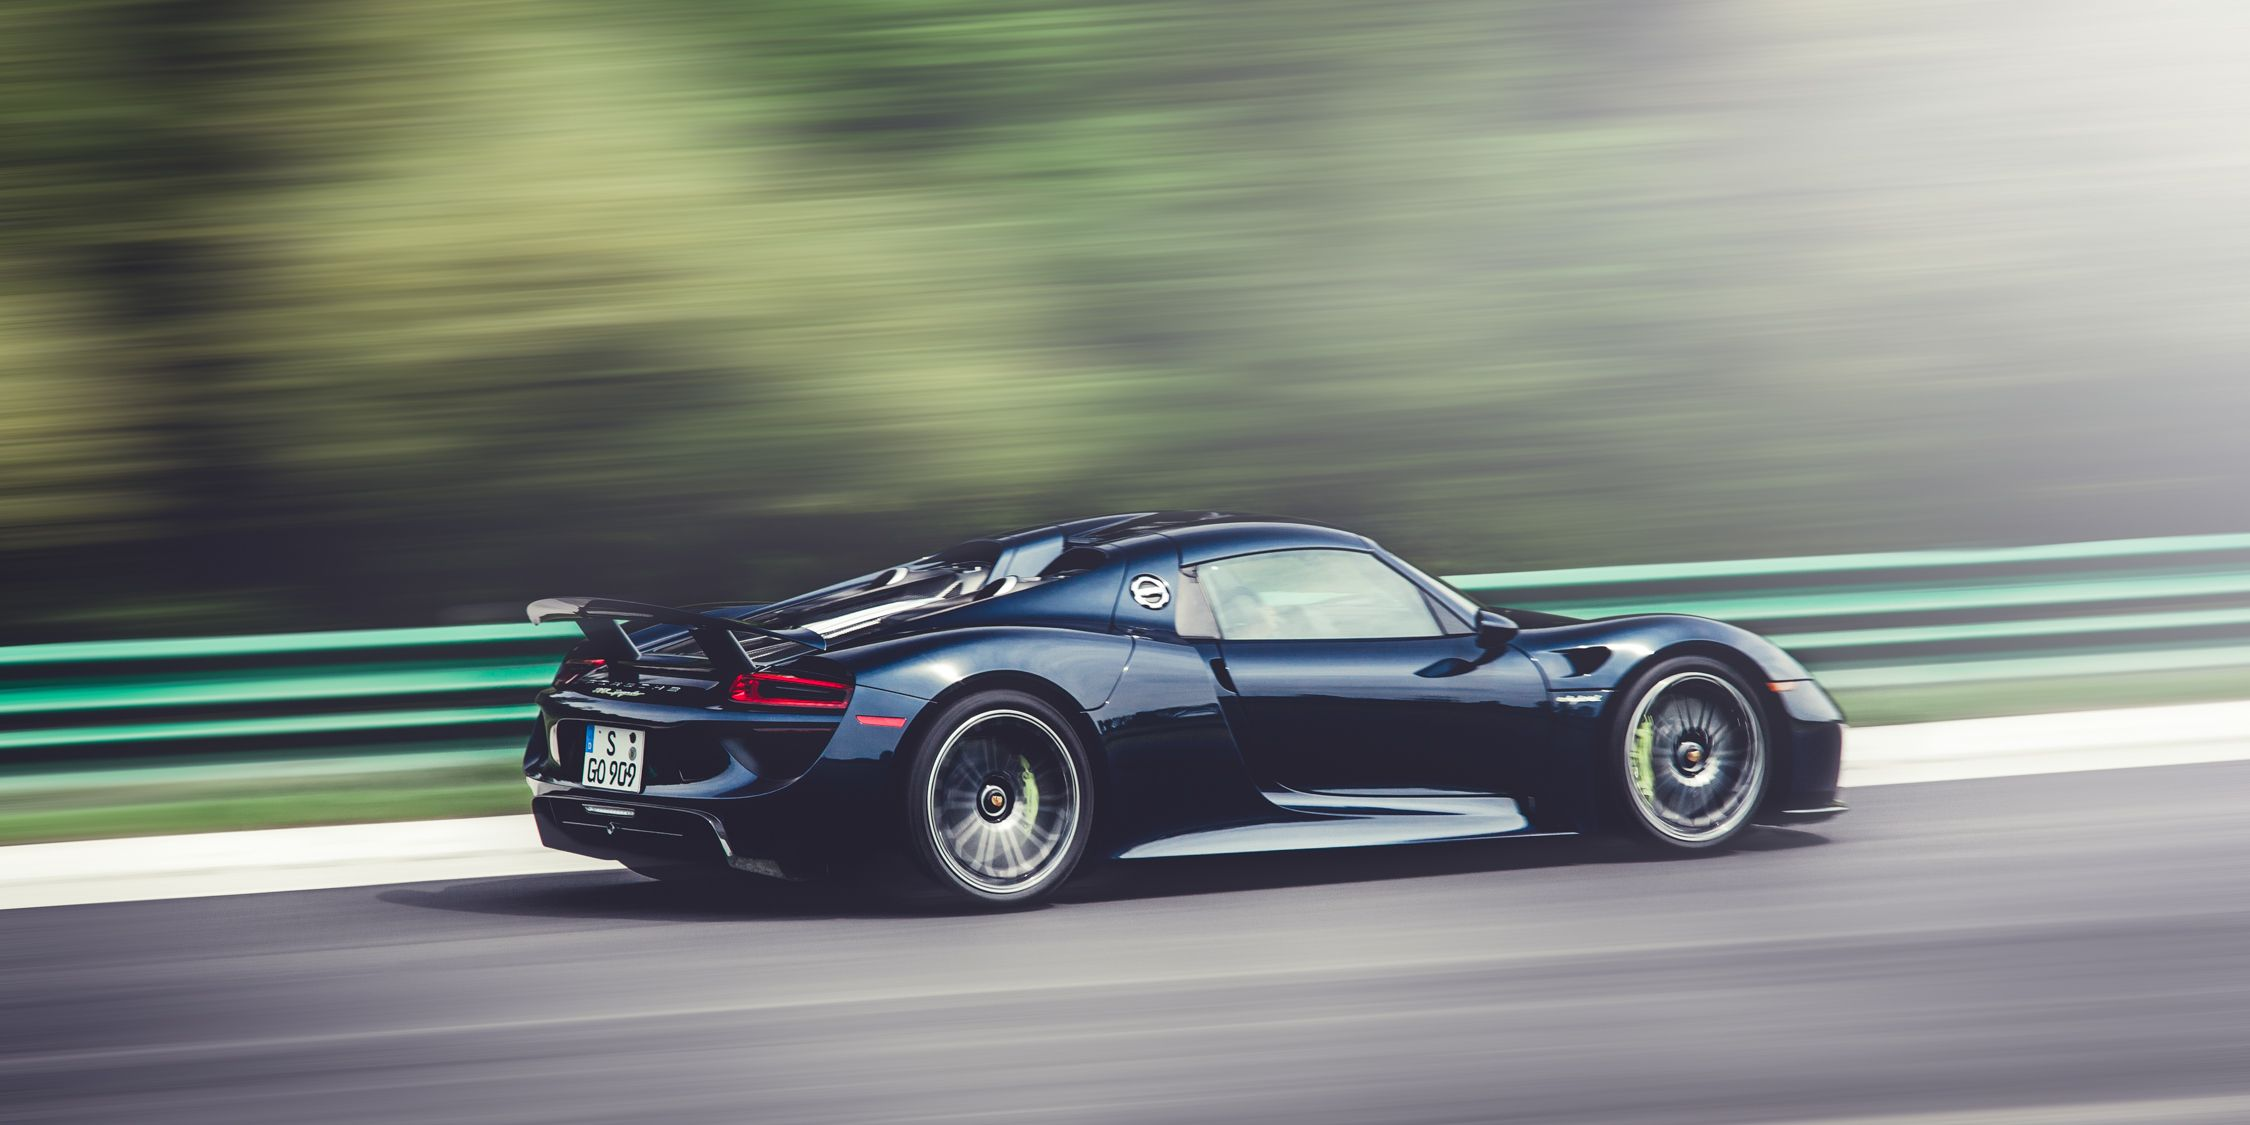 The 15 Quickest Cars of the 21st Century (So Far)